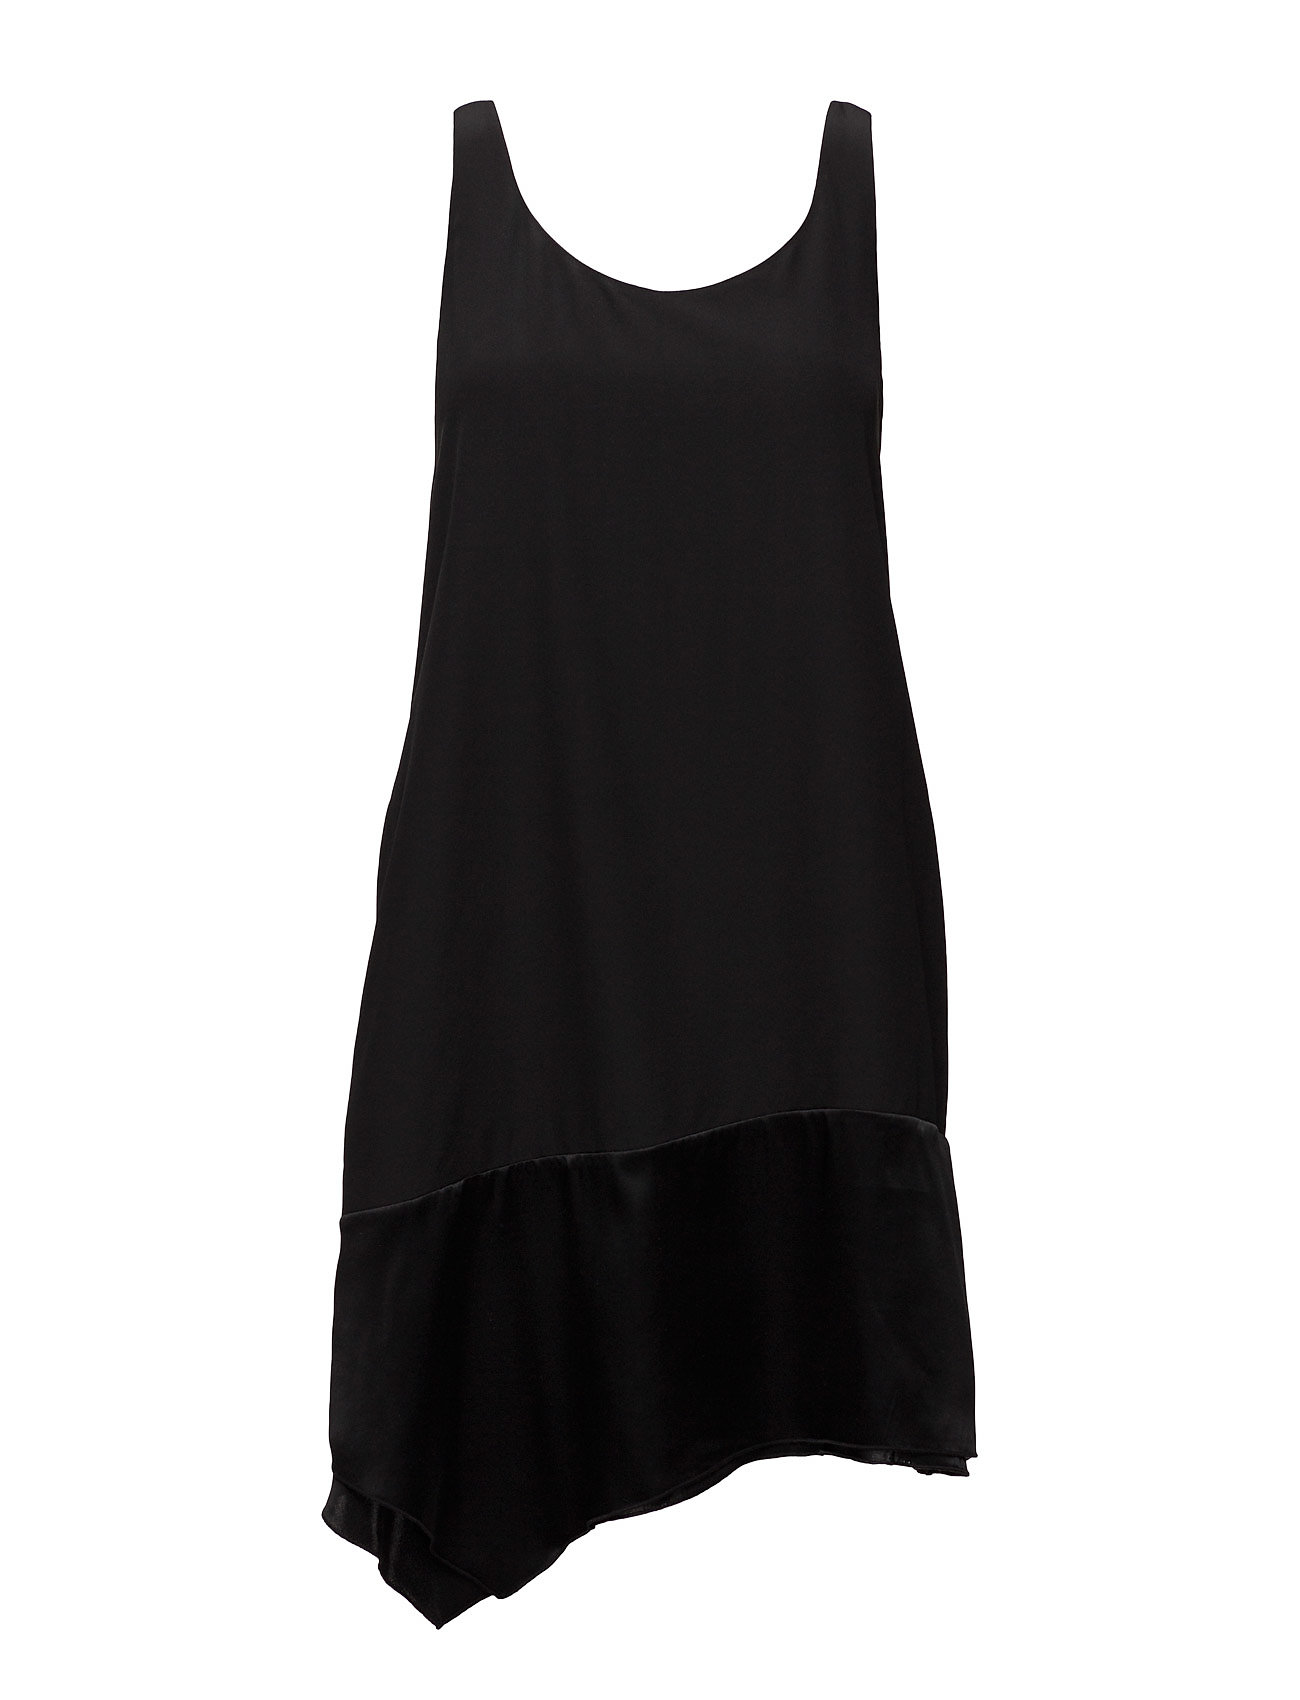 3.1 phillip lim – Sl double layer dress på boozt.com dk